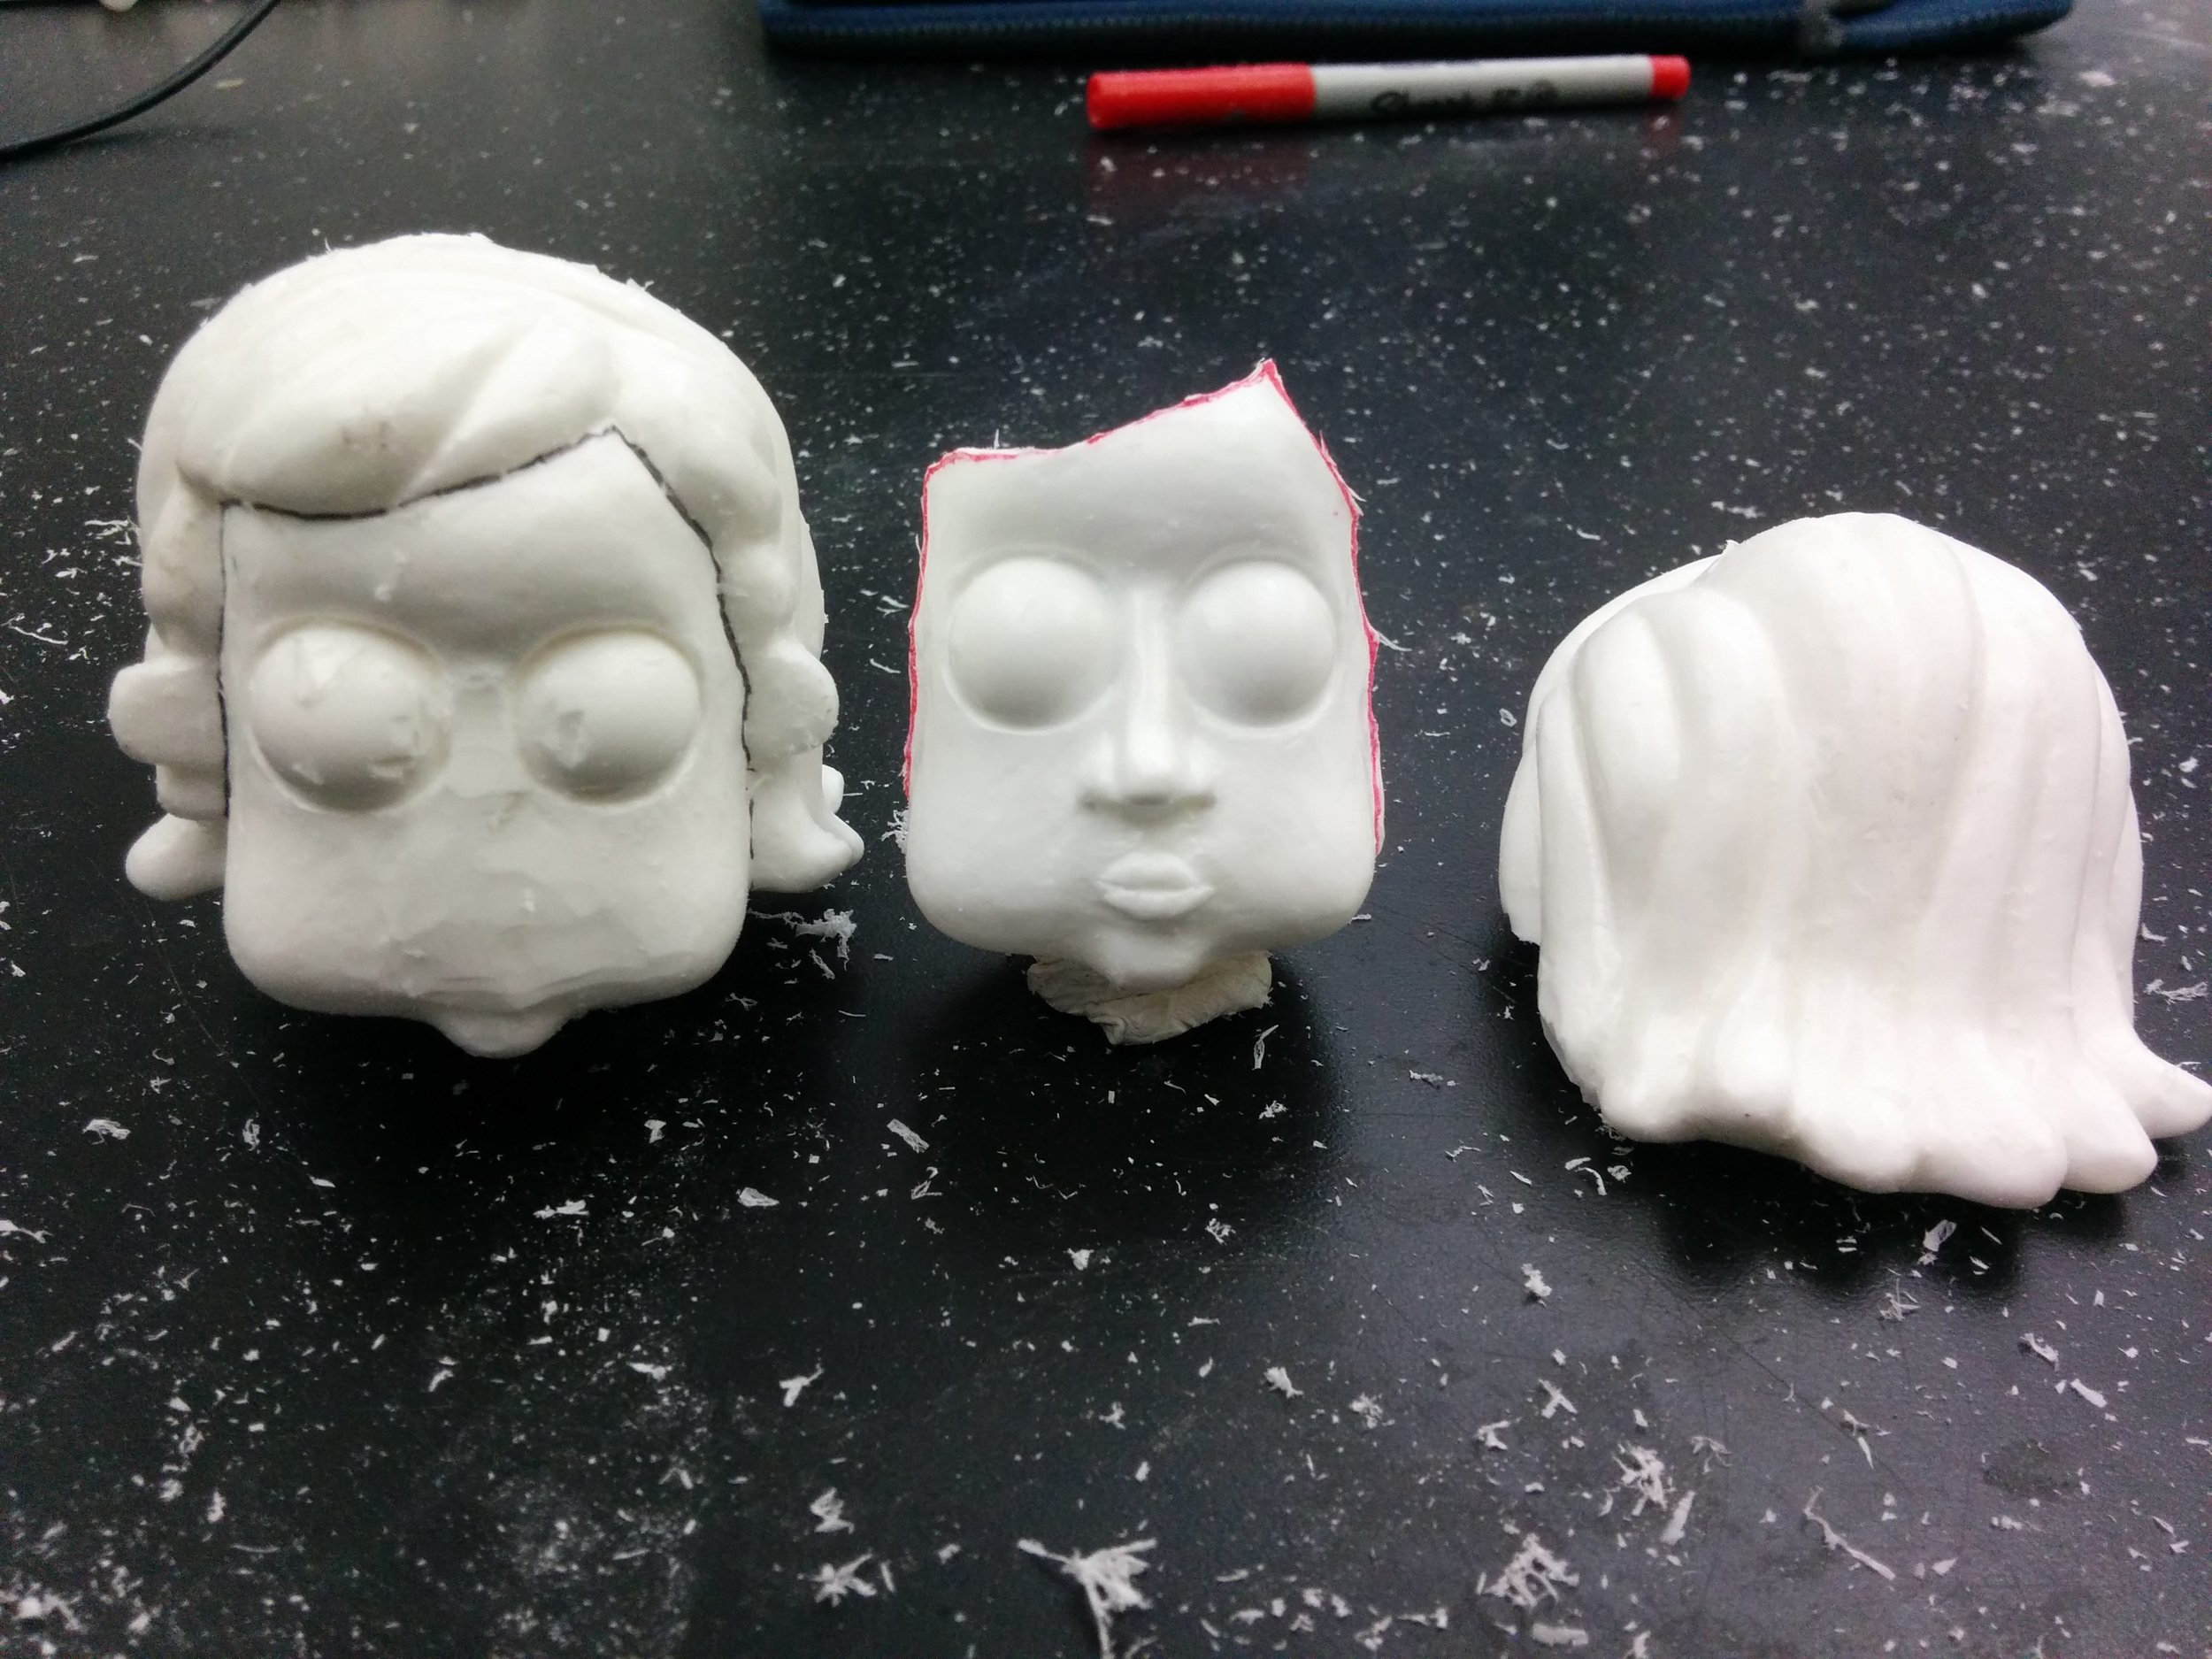 Solid and hollow casts of the head, to form the head block and replacement face.